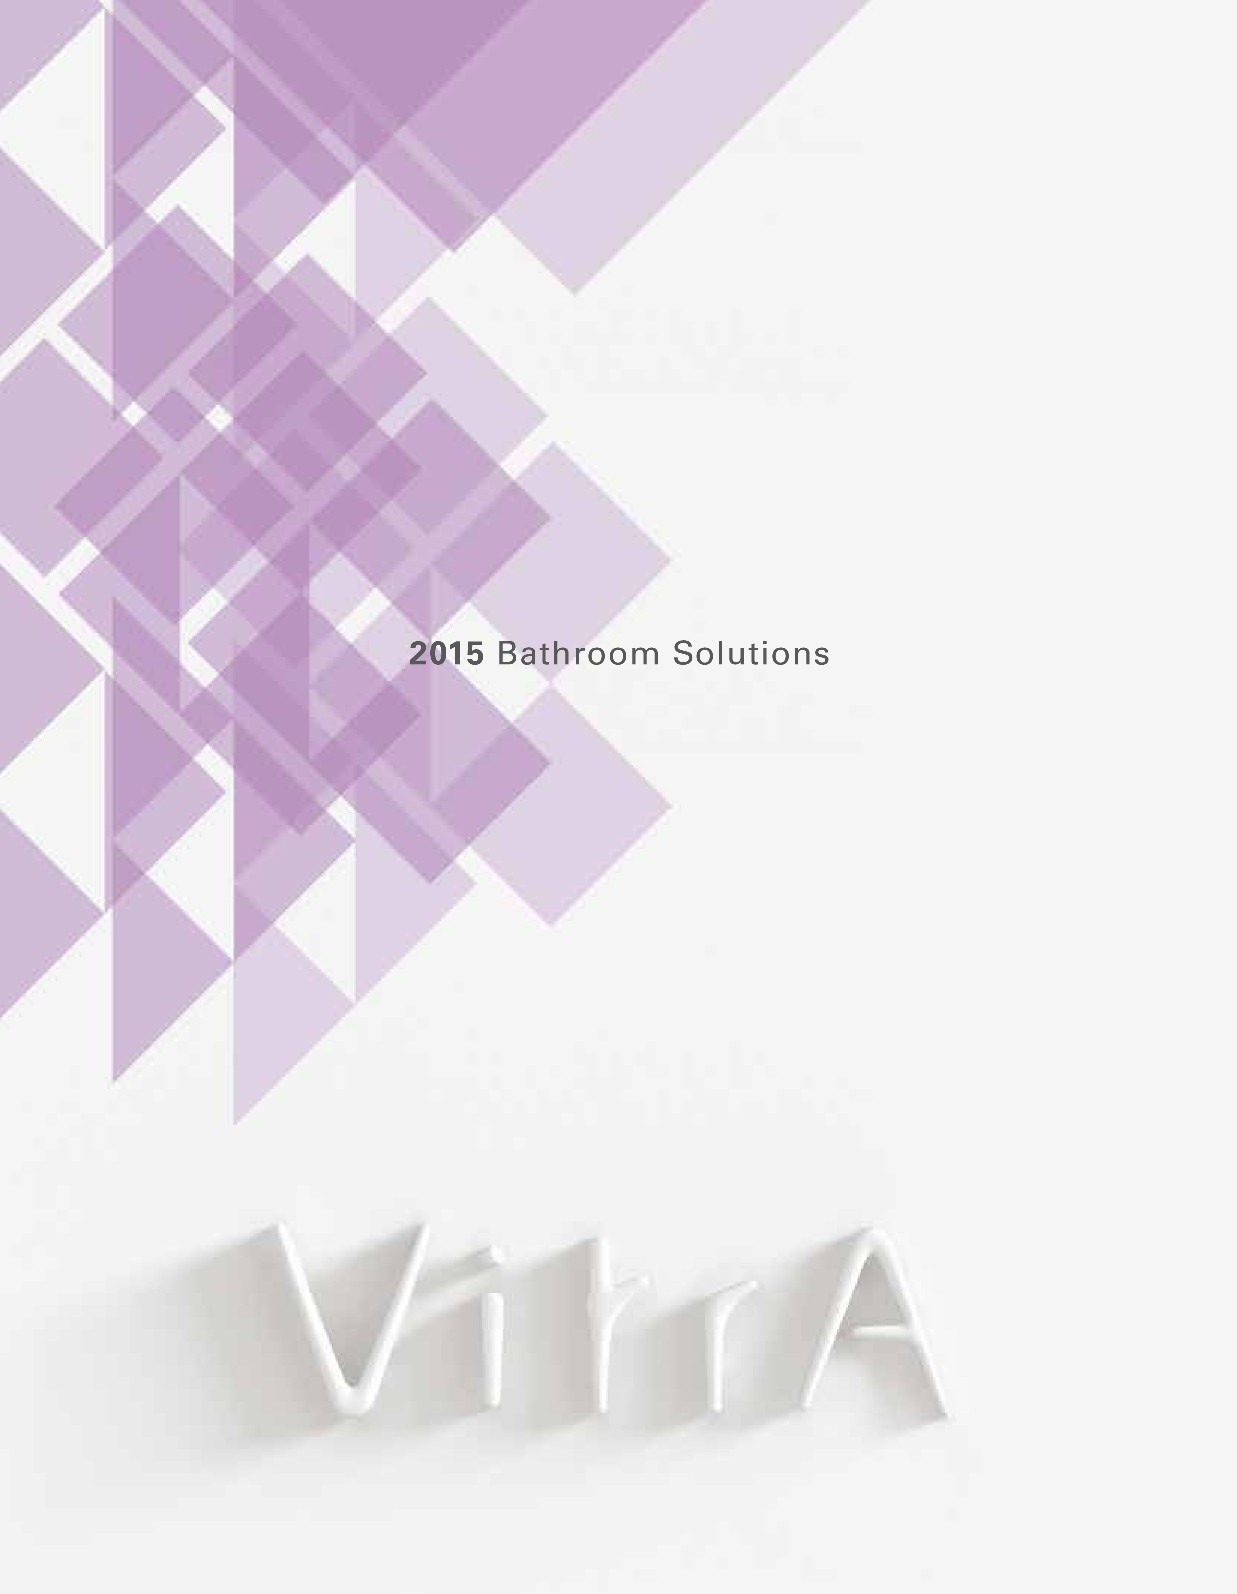 VitrA Products Catalogue. VITRA Bathroom Products Catalogues at Wizbox